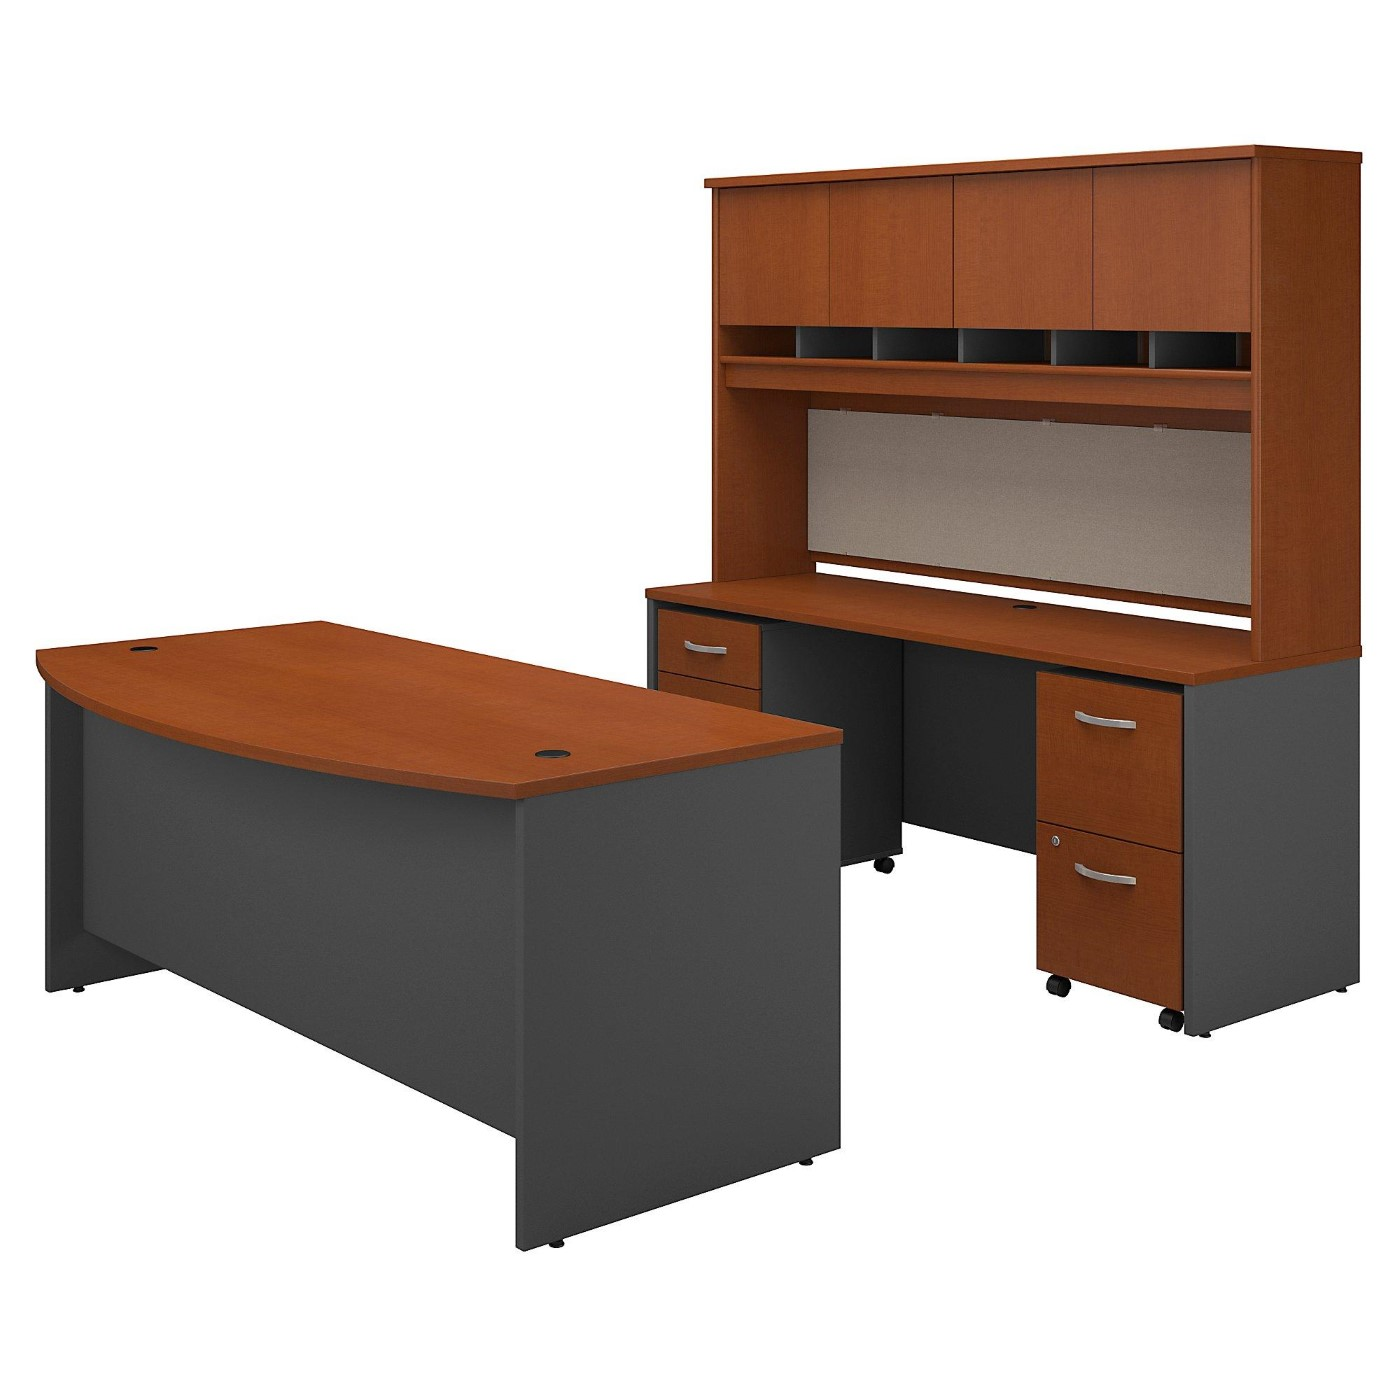 <font color=#c60><b>BUSH BUSINESS FURNITURE SERIES C BOW FRONT DESK WITH CREDENZA, HUTCH AND STORAGE. FREE SHIPPING</font></b></font>